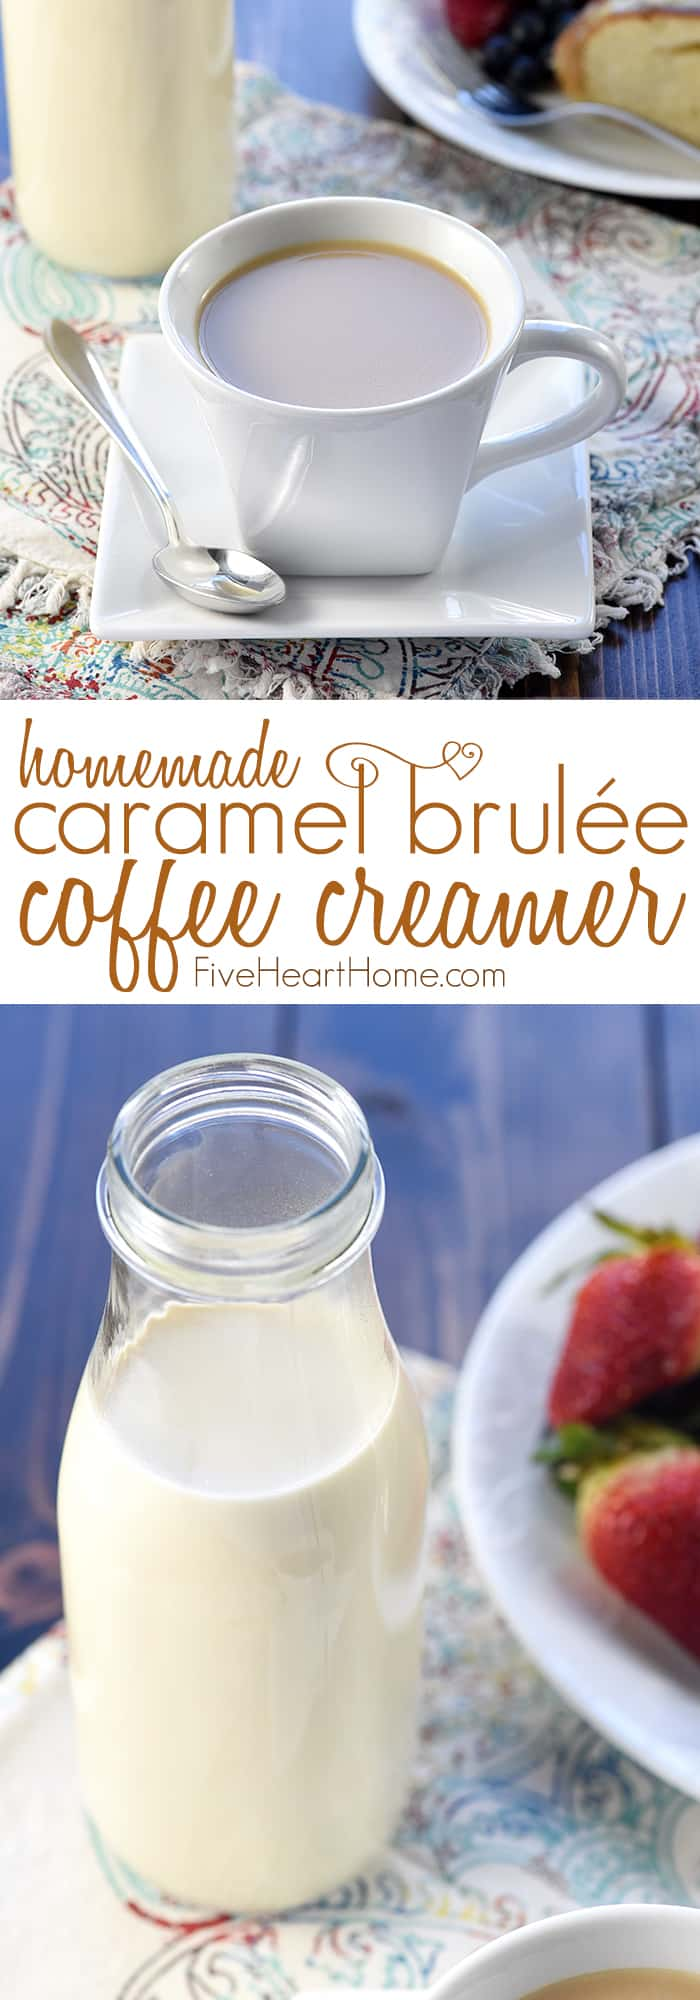 Caramel Brulée Coffee Creamer ~ a quick and easy homemade recipe for making Copycat Starbucks Caramel Brulée Lattes at home! | FiveHeartHome.com